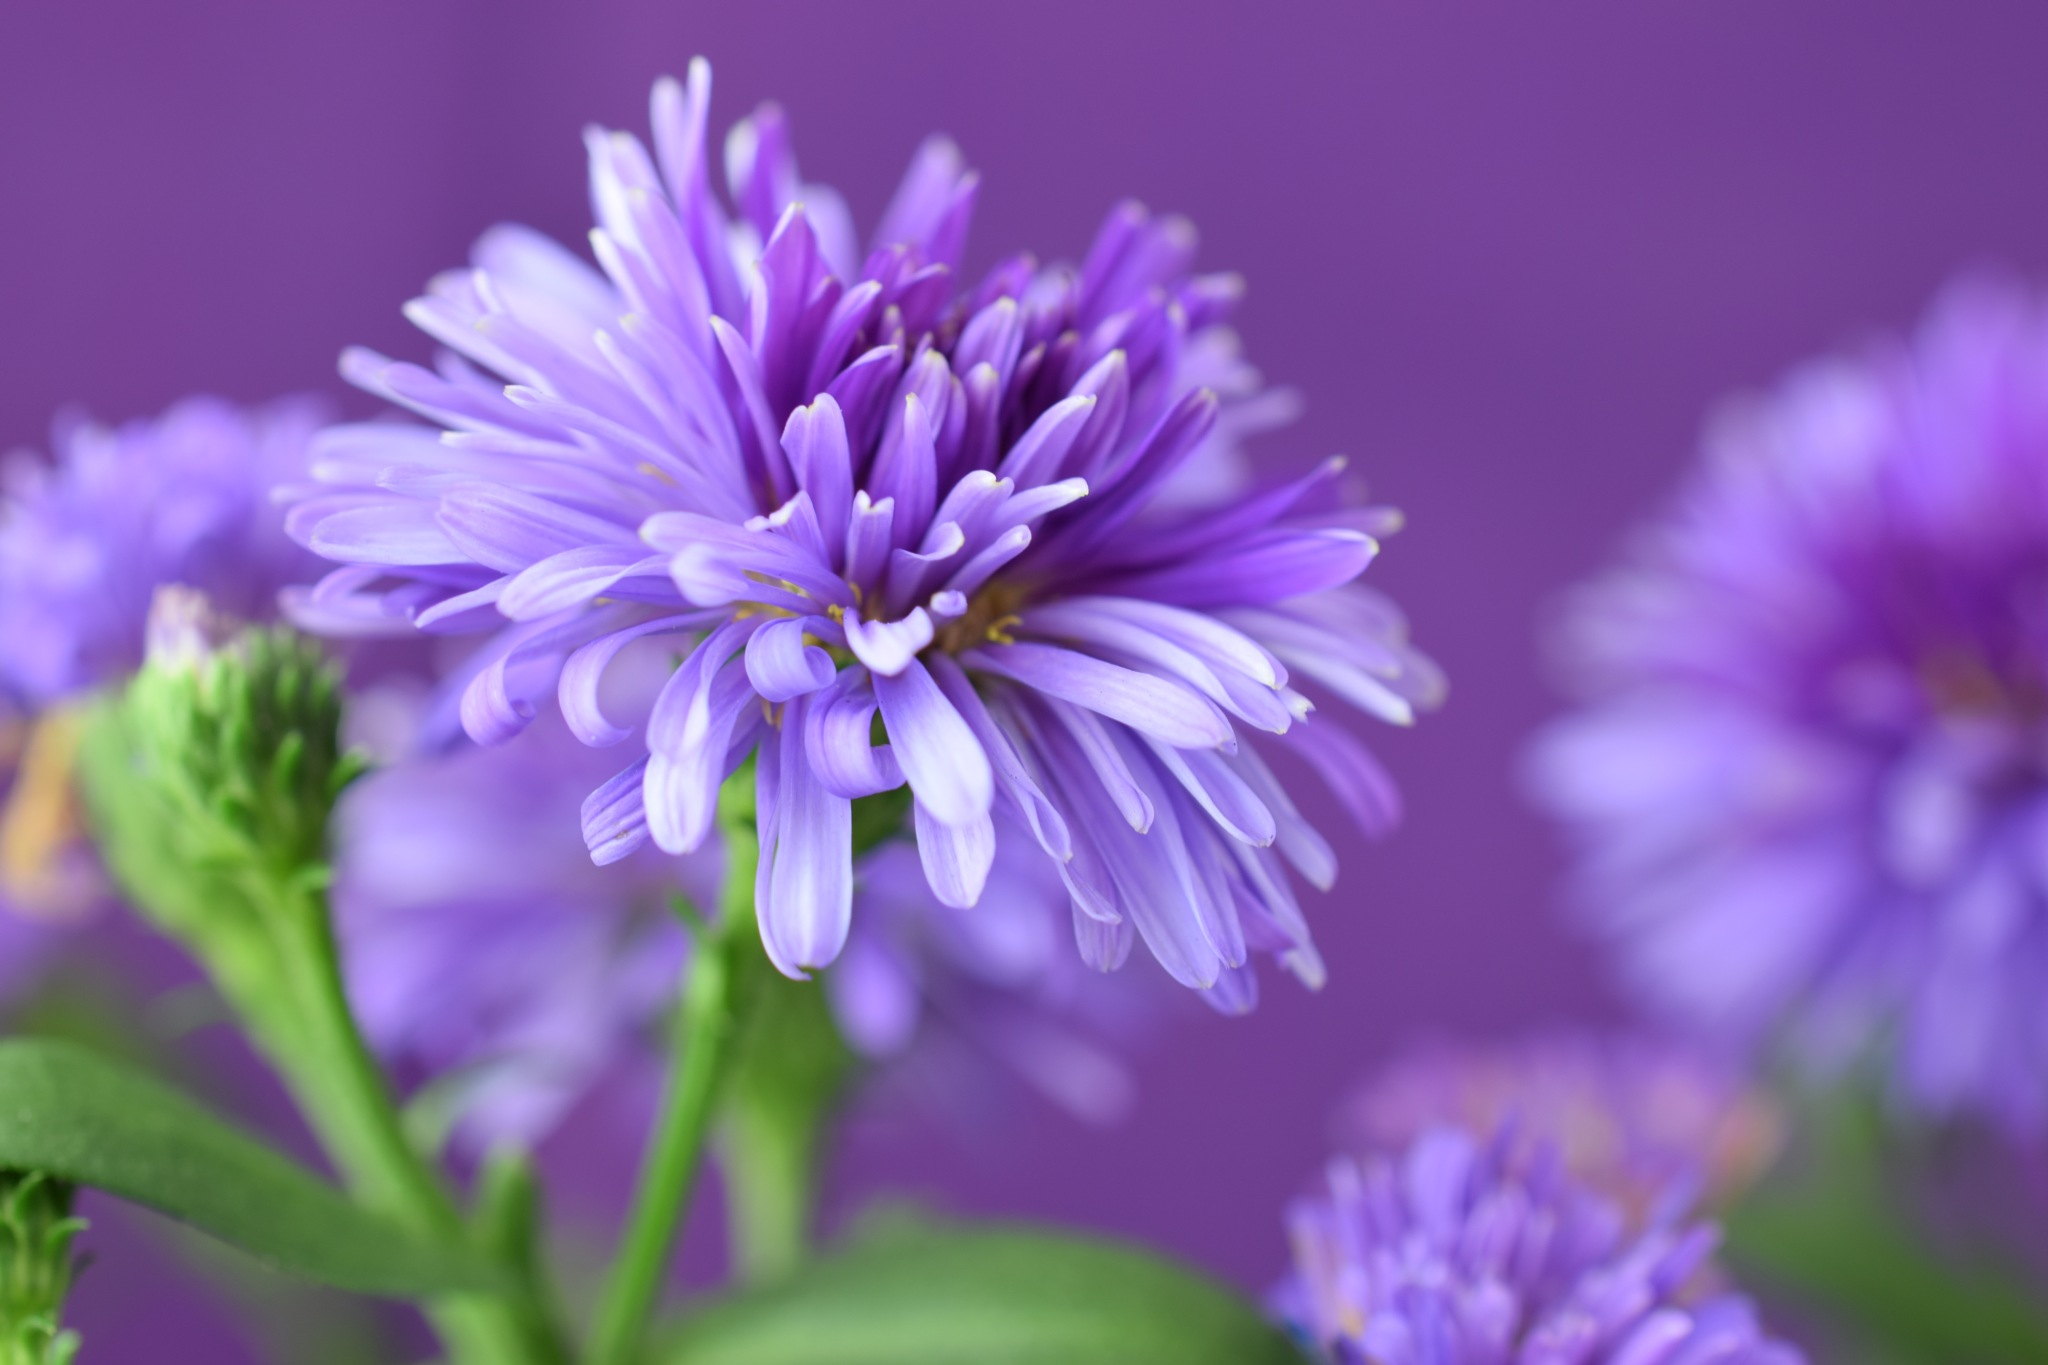 Aster victoria IVIVIVIVIVV  by Theresia Buskas